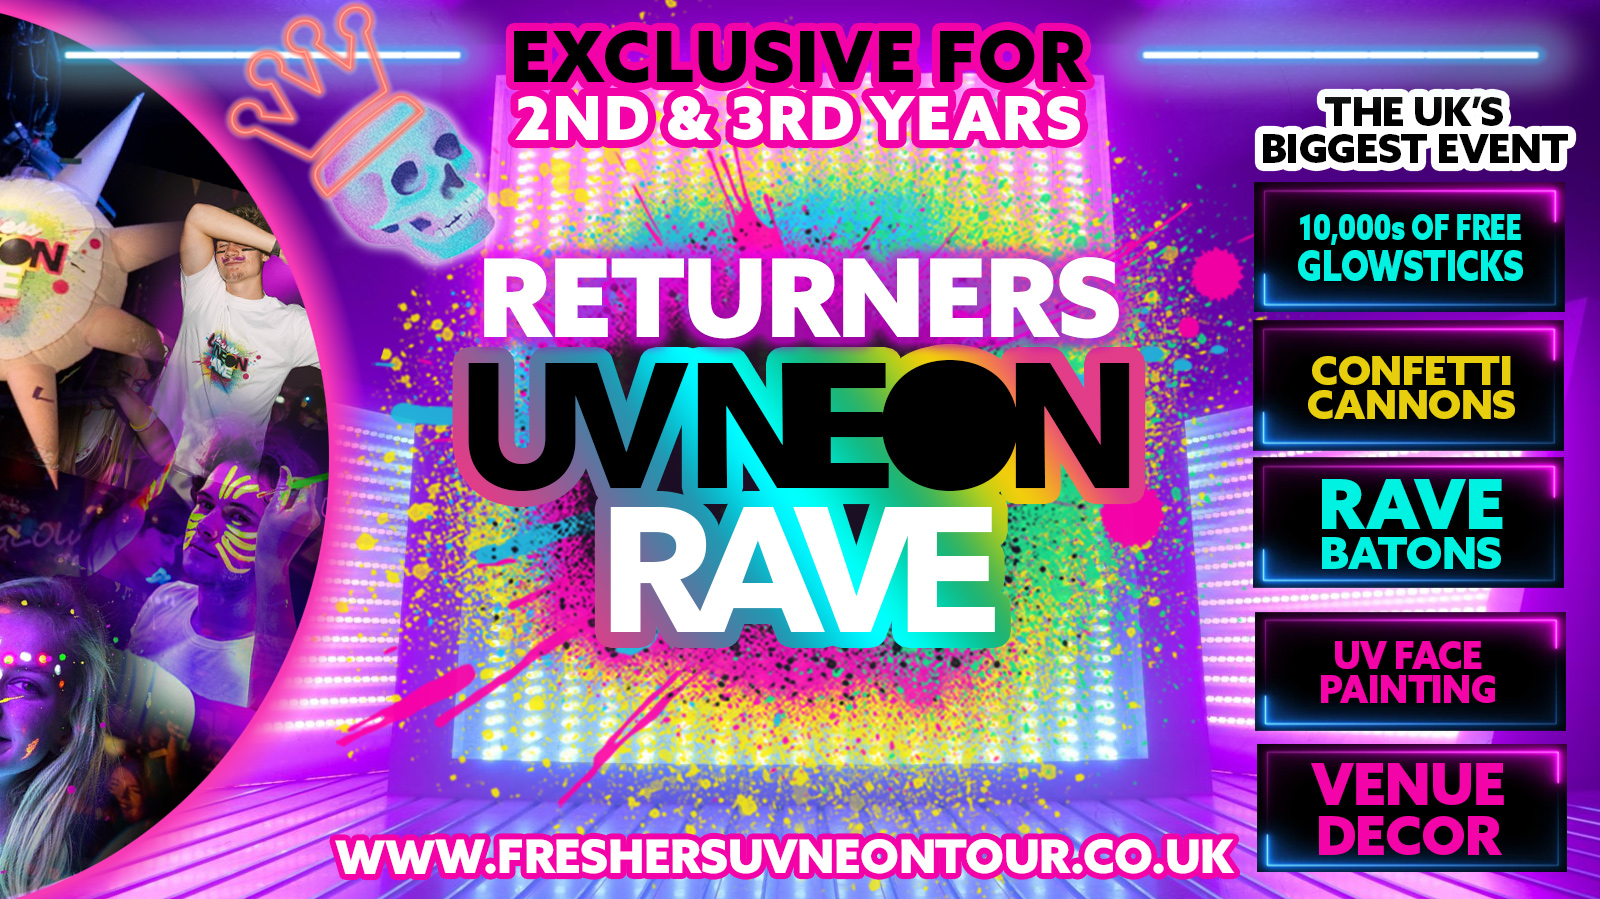 Bath Returners UV Neon Rave   Exclusive for 2nd & 3rd Years